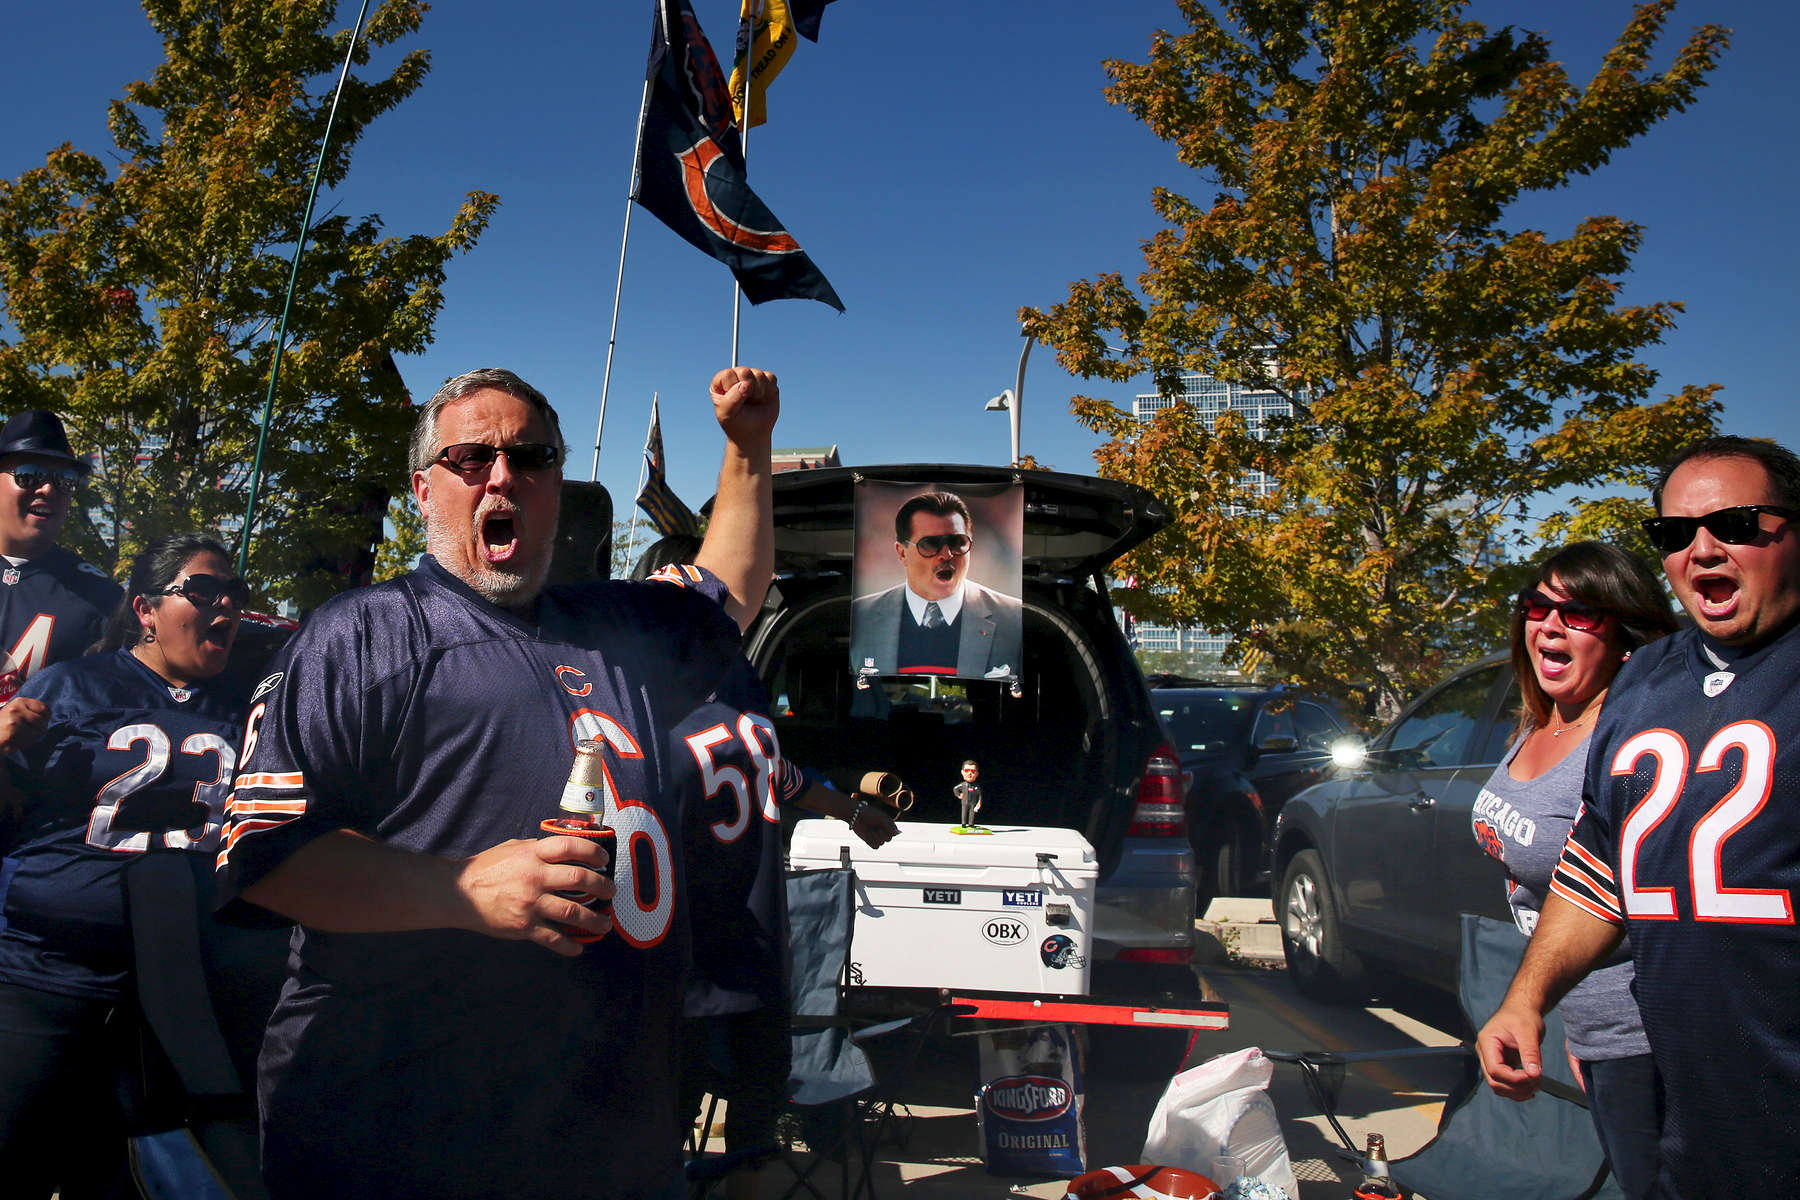 Bears fan Marc Sokolowski of Orland Park, at left, leads a cheer with a poster of former Bears coach Mike Ditka in the tailgating area prior to an NFL football game between the Chicago Bears and the Buffalo Bills at Solider Field in Chicago.